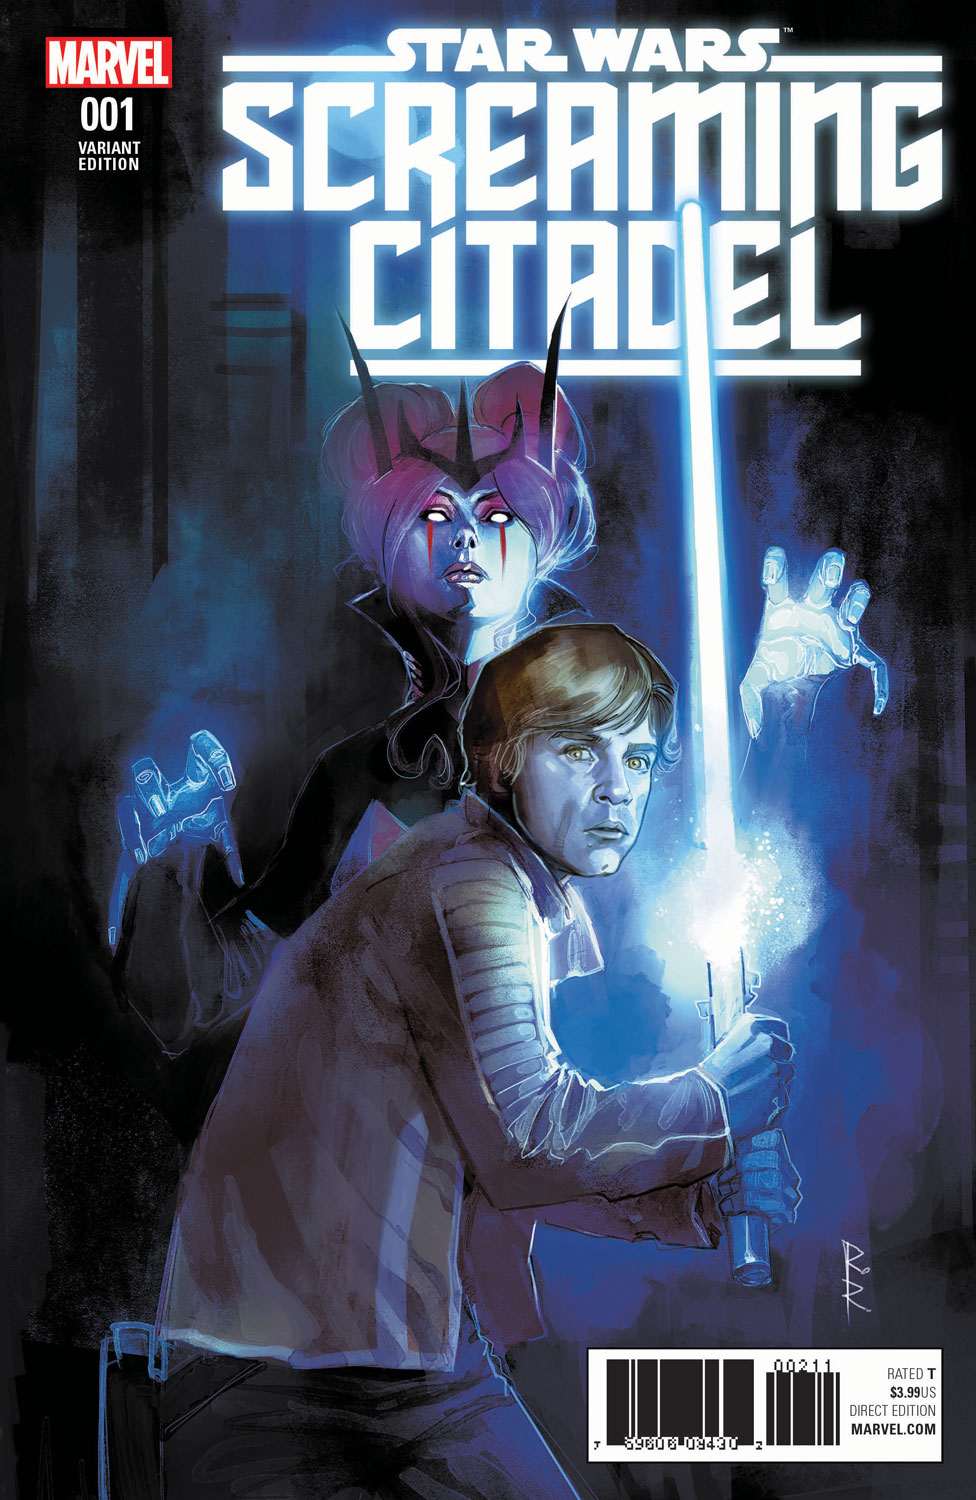 STAR WARS SCREAMING CITADEL #1 REIS B VAR